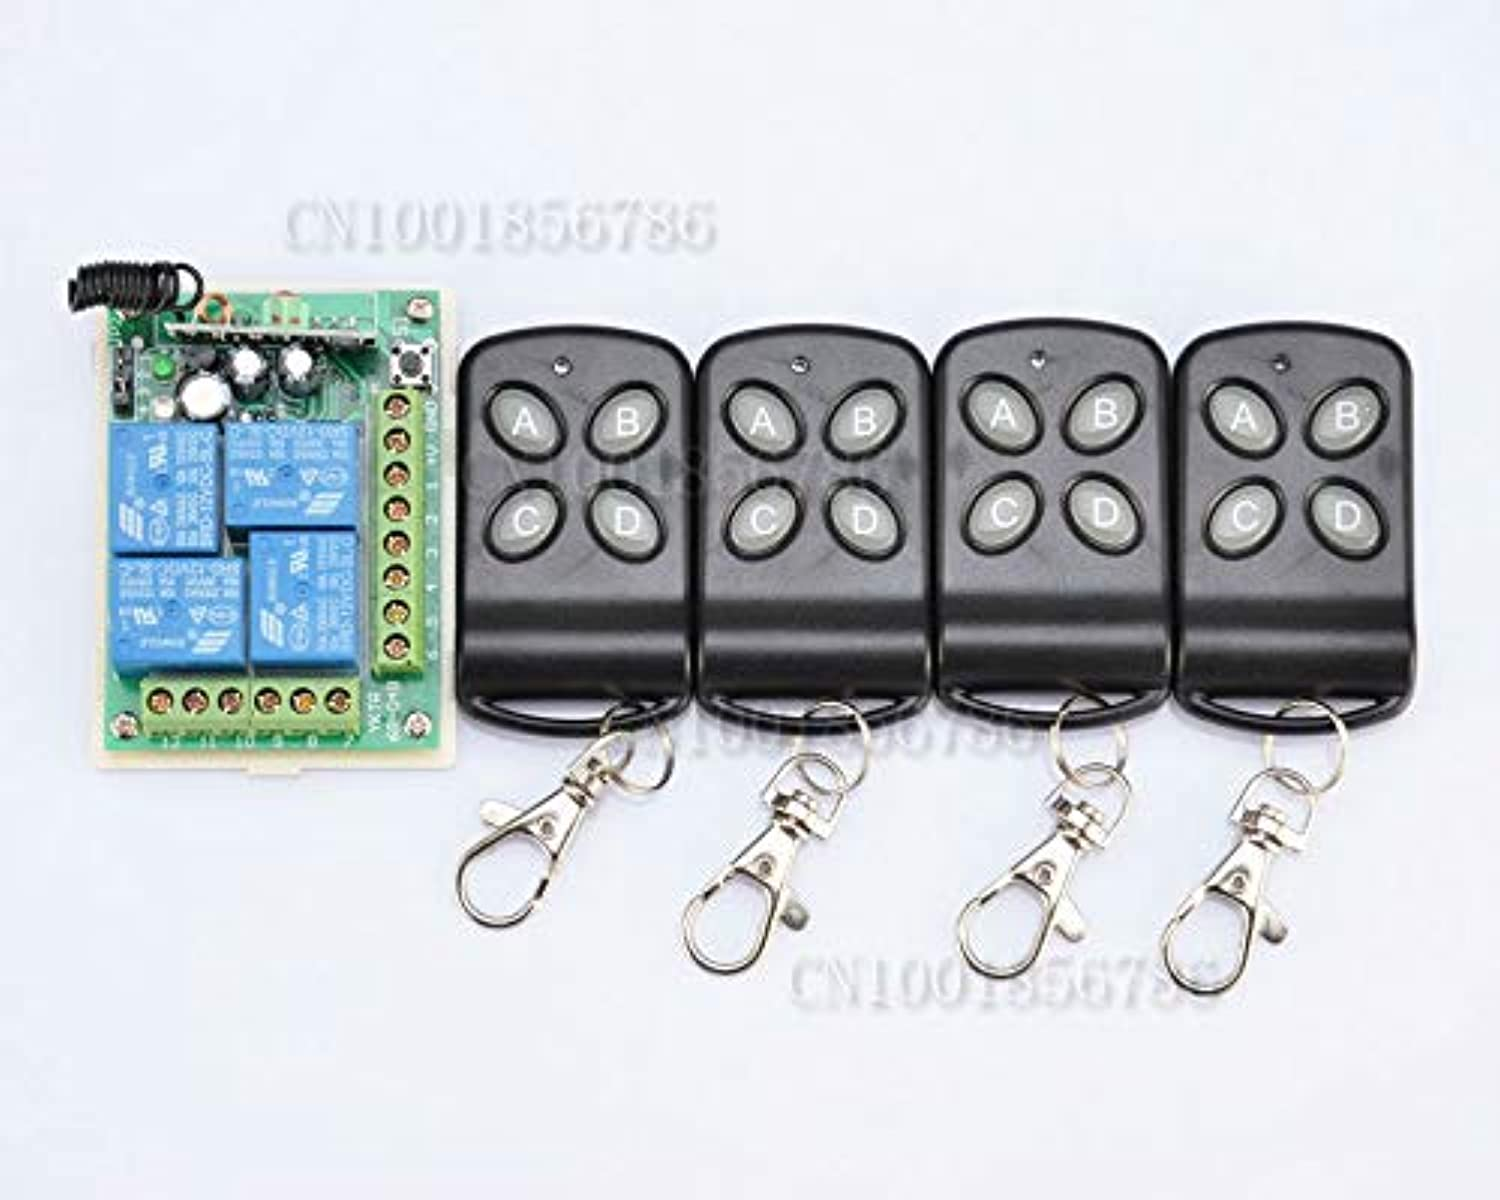 DC12V 4CH RF Wireless Remote Control System 4 Transmitter and 1 Receiver Universal Gate Radio ping